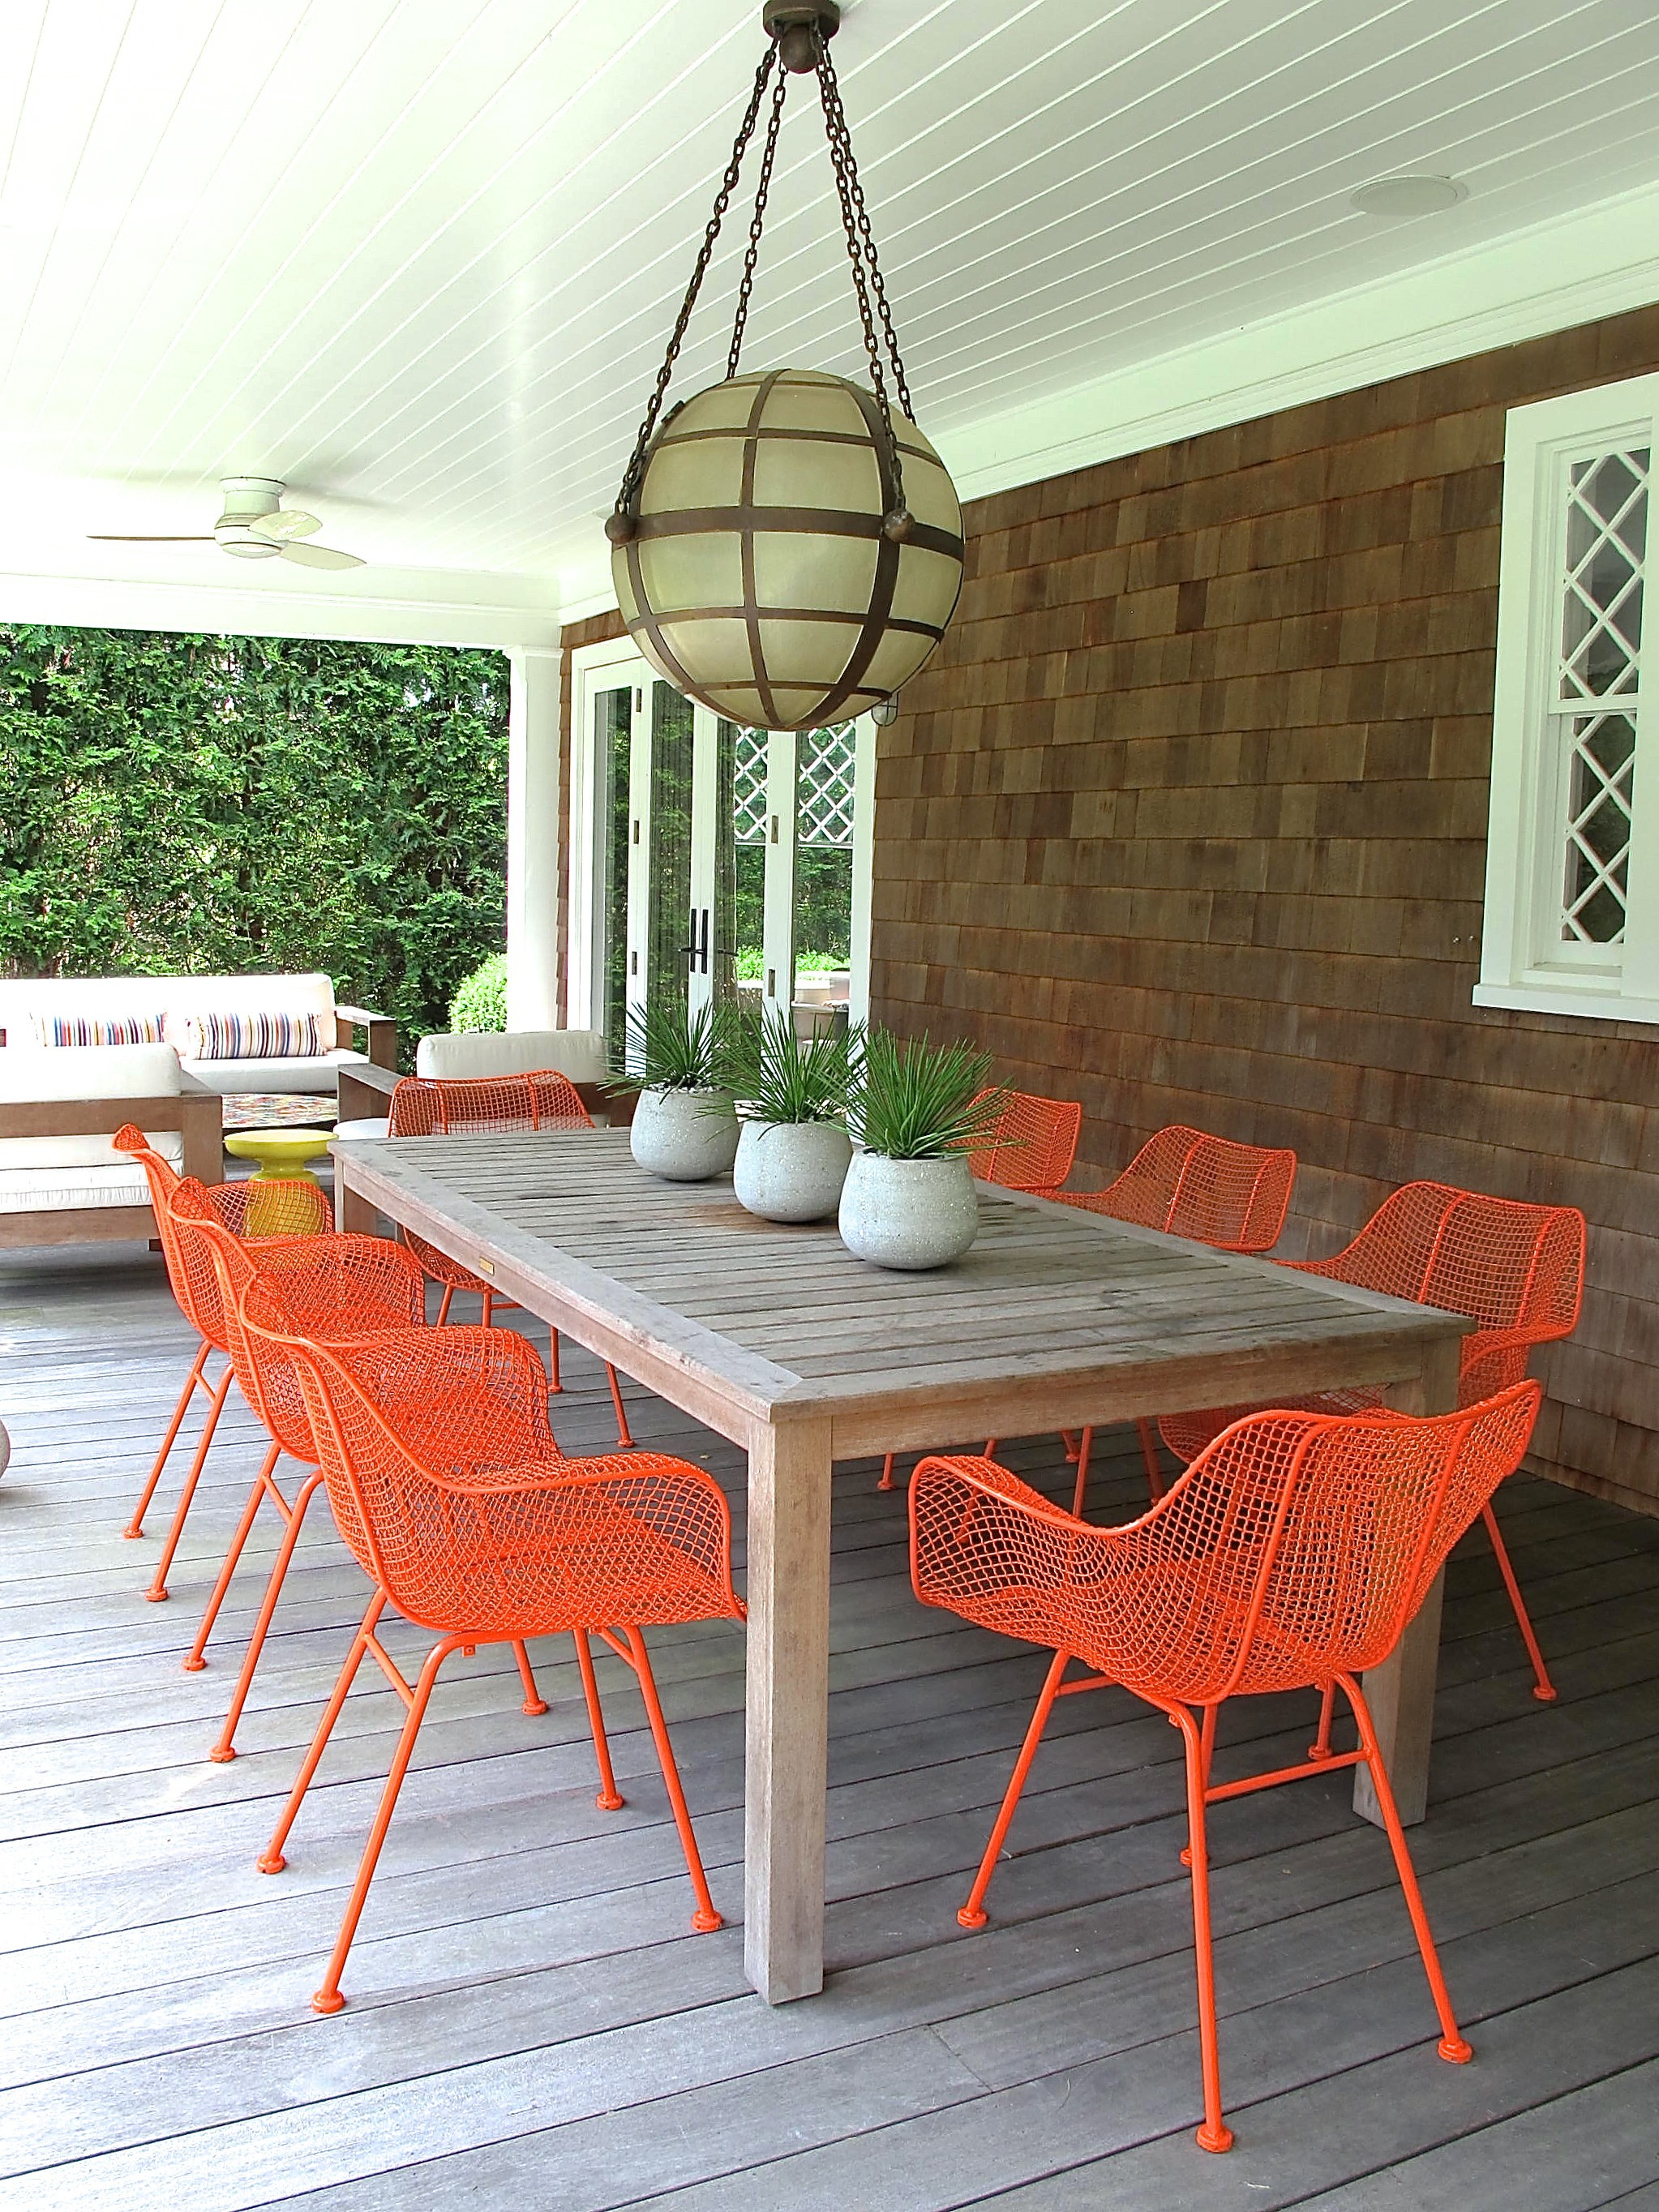 Discount Outdoor Furniture Near Me